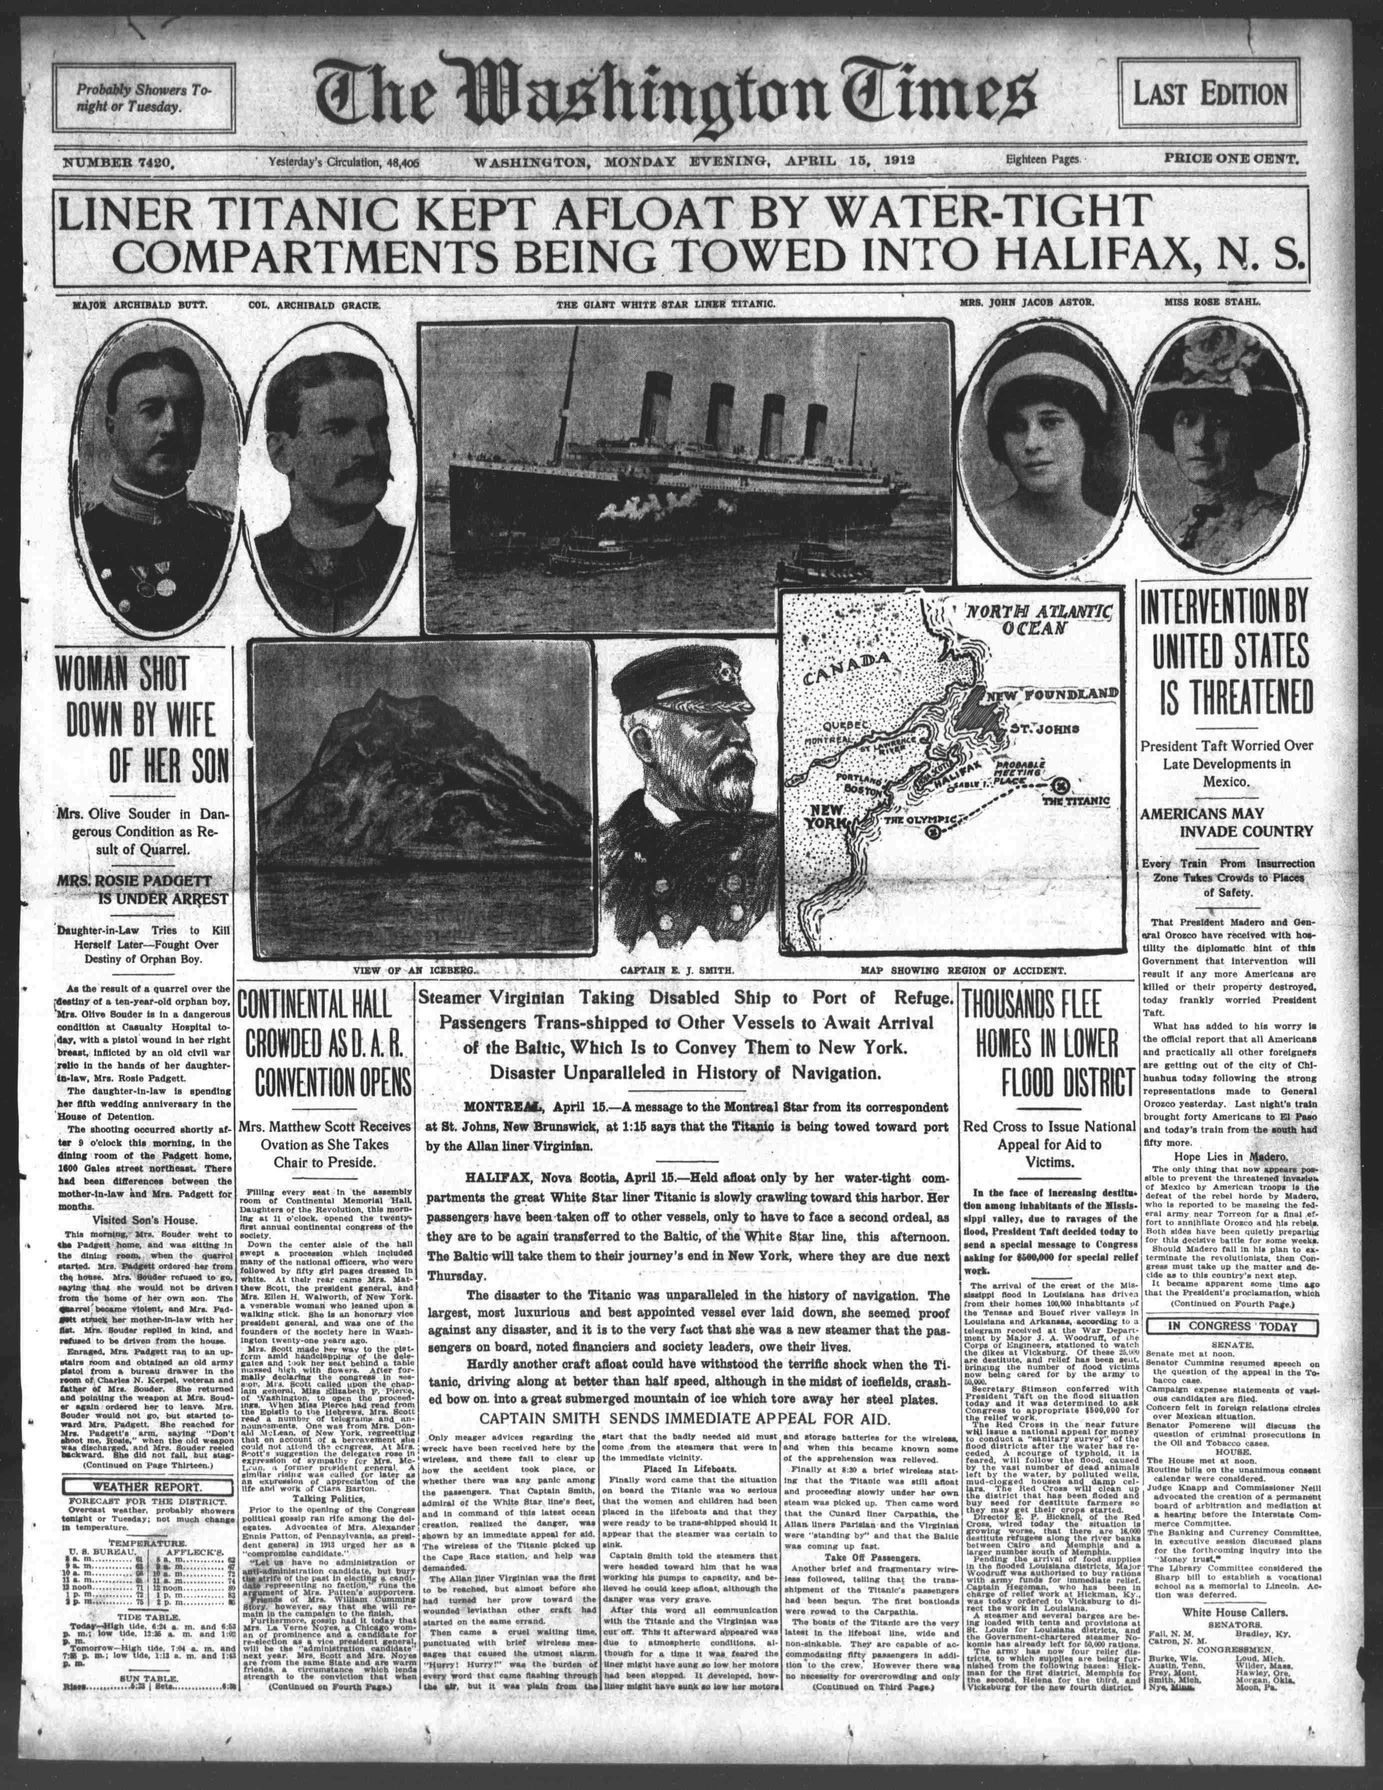 Titanic Newspaper Front Page 1912-04-15 The Washington Times, April 15, 1912, LAST EDITION, Page 1